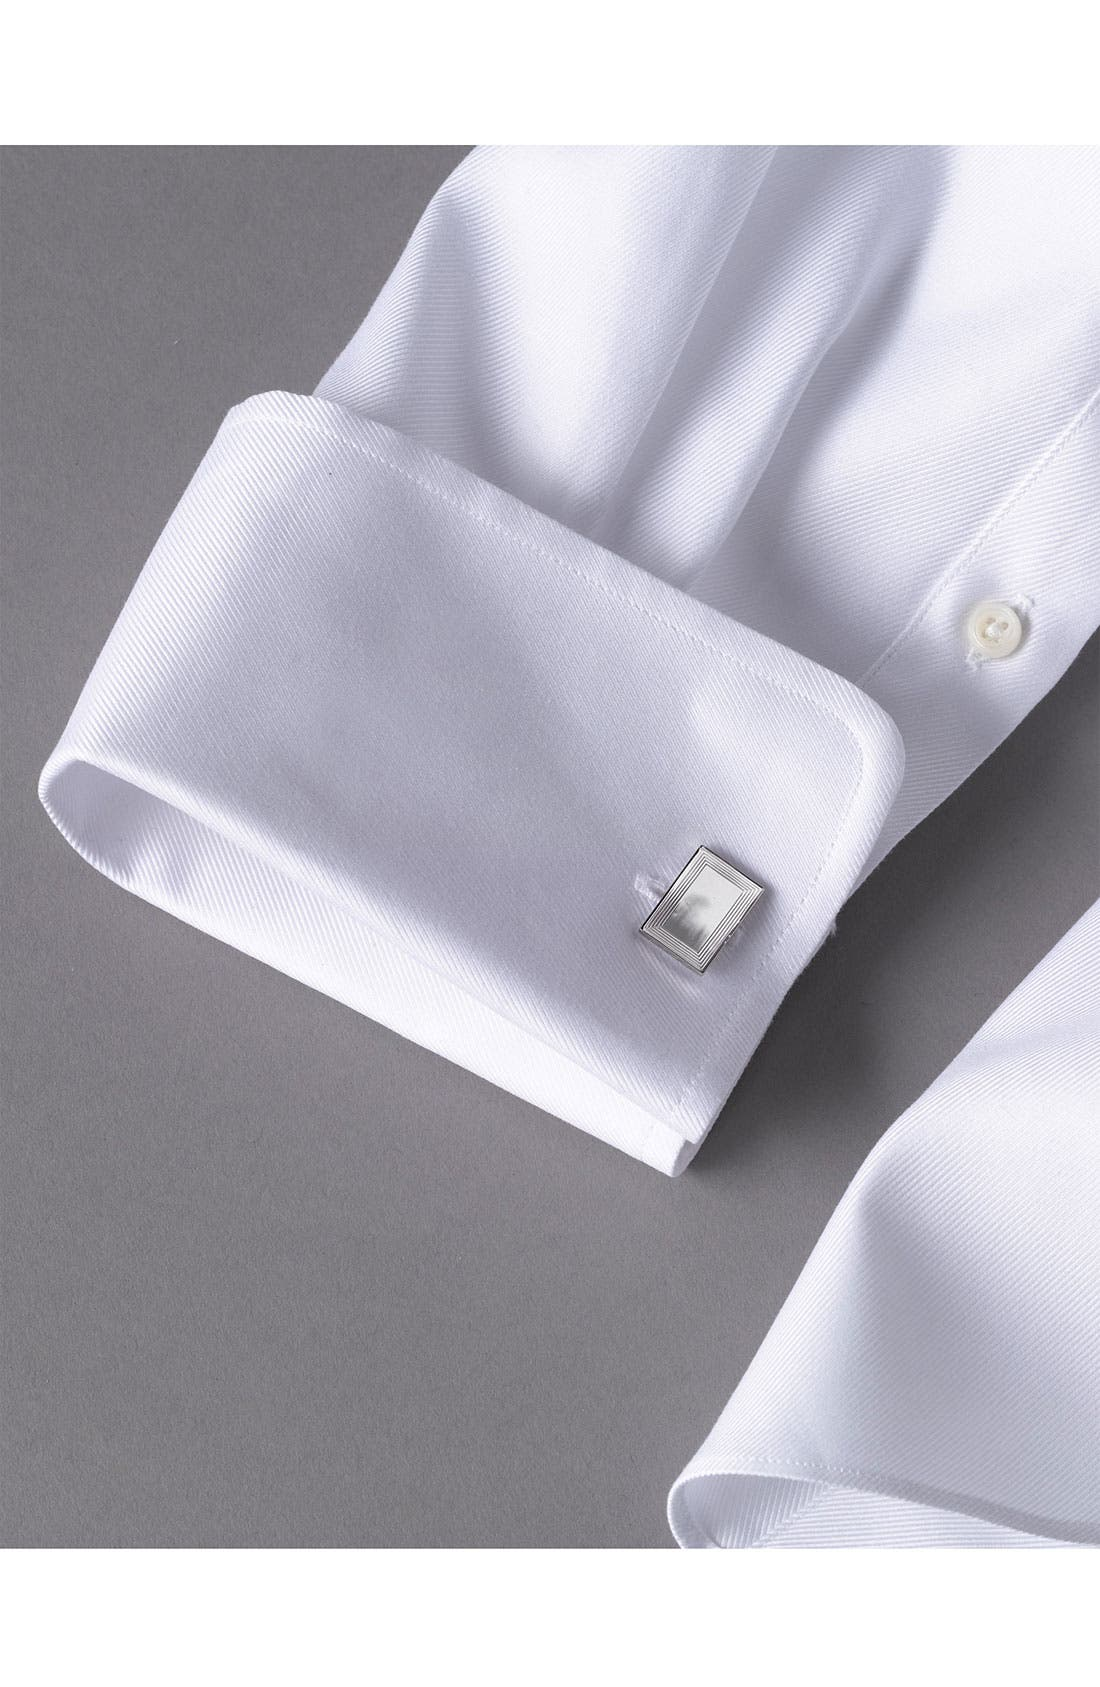 Cuff Links,                             Alternate thumbnail 2, color,                             040